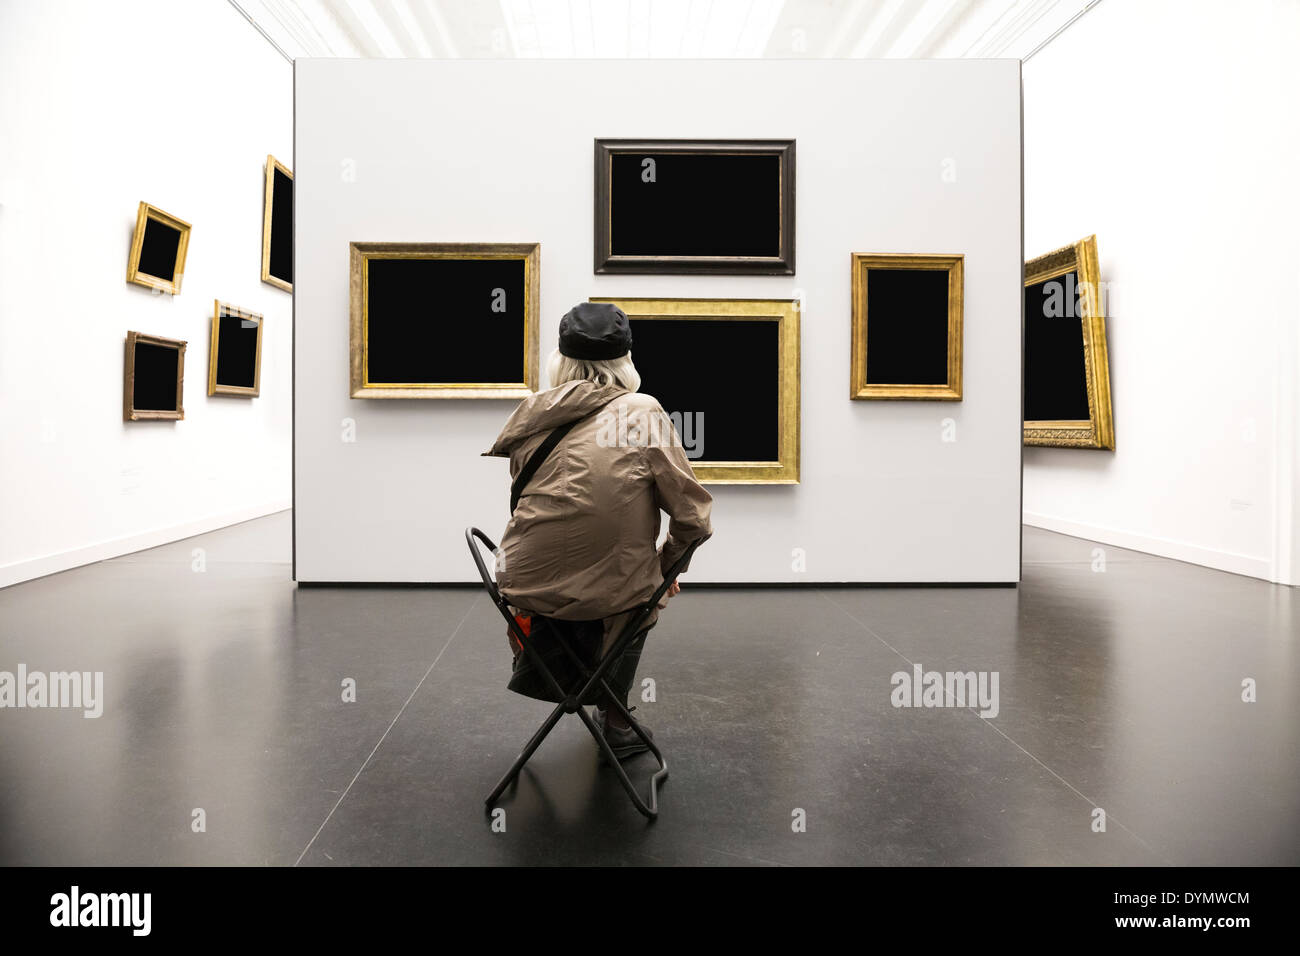 An old lady sitting and starting at blank paintings in an art gallery. Rear view. Long shot. - Stock Image